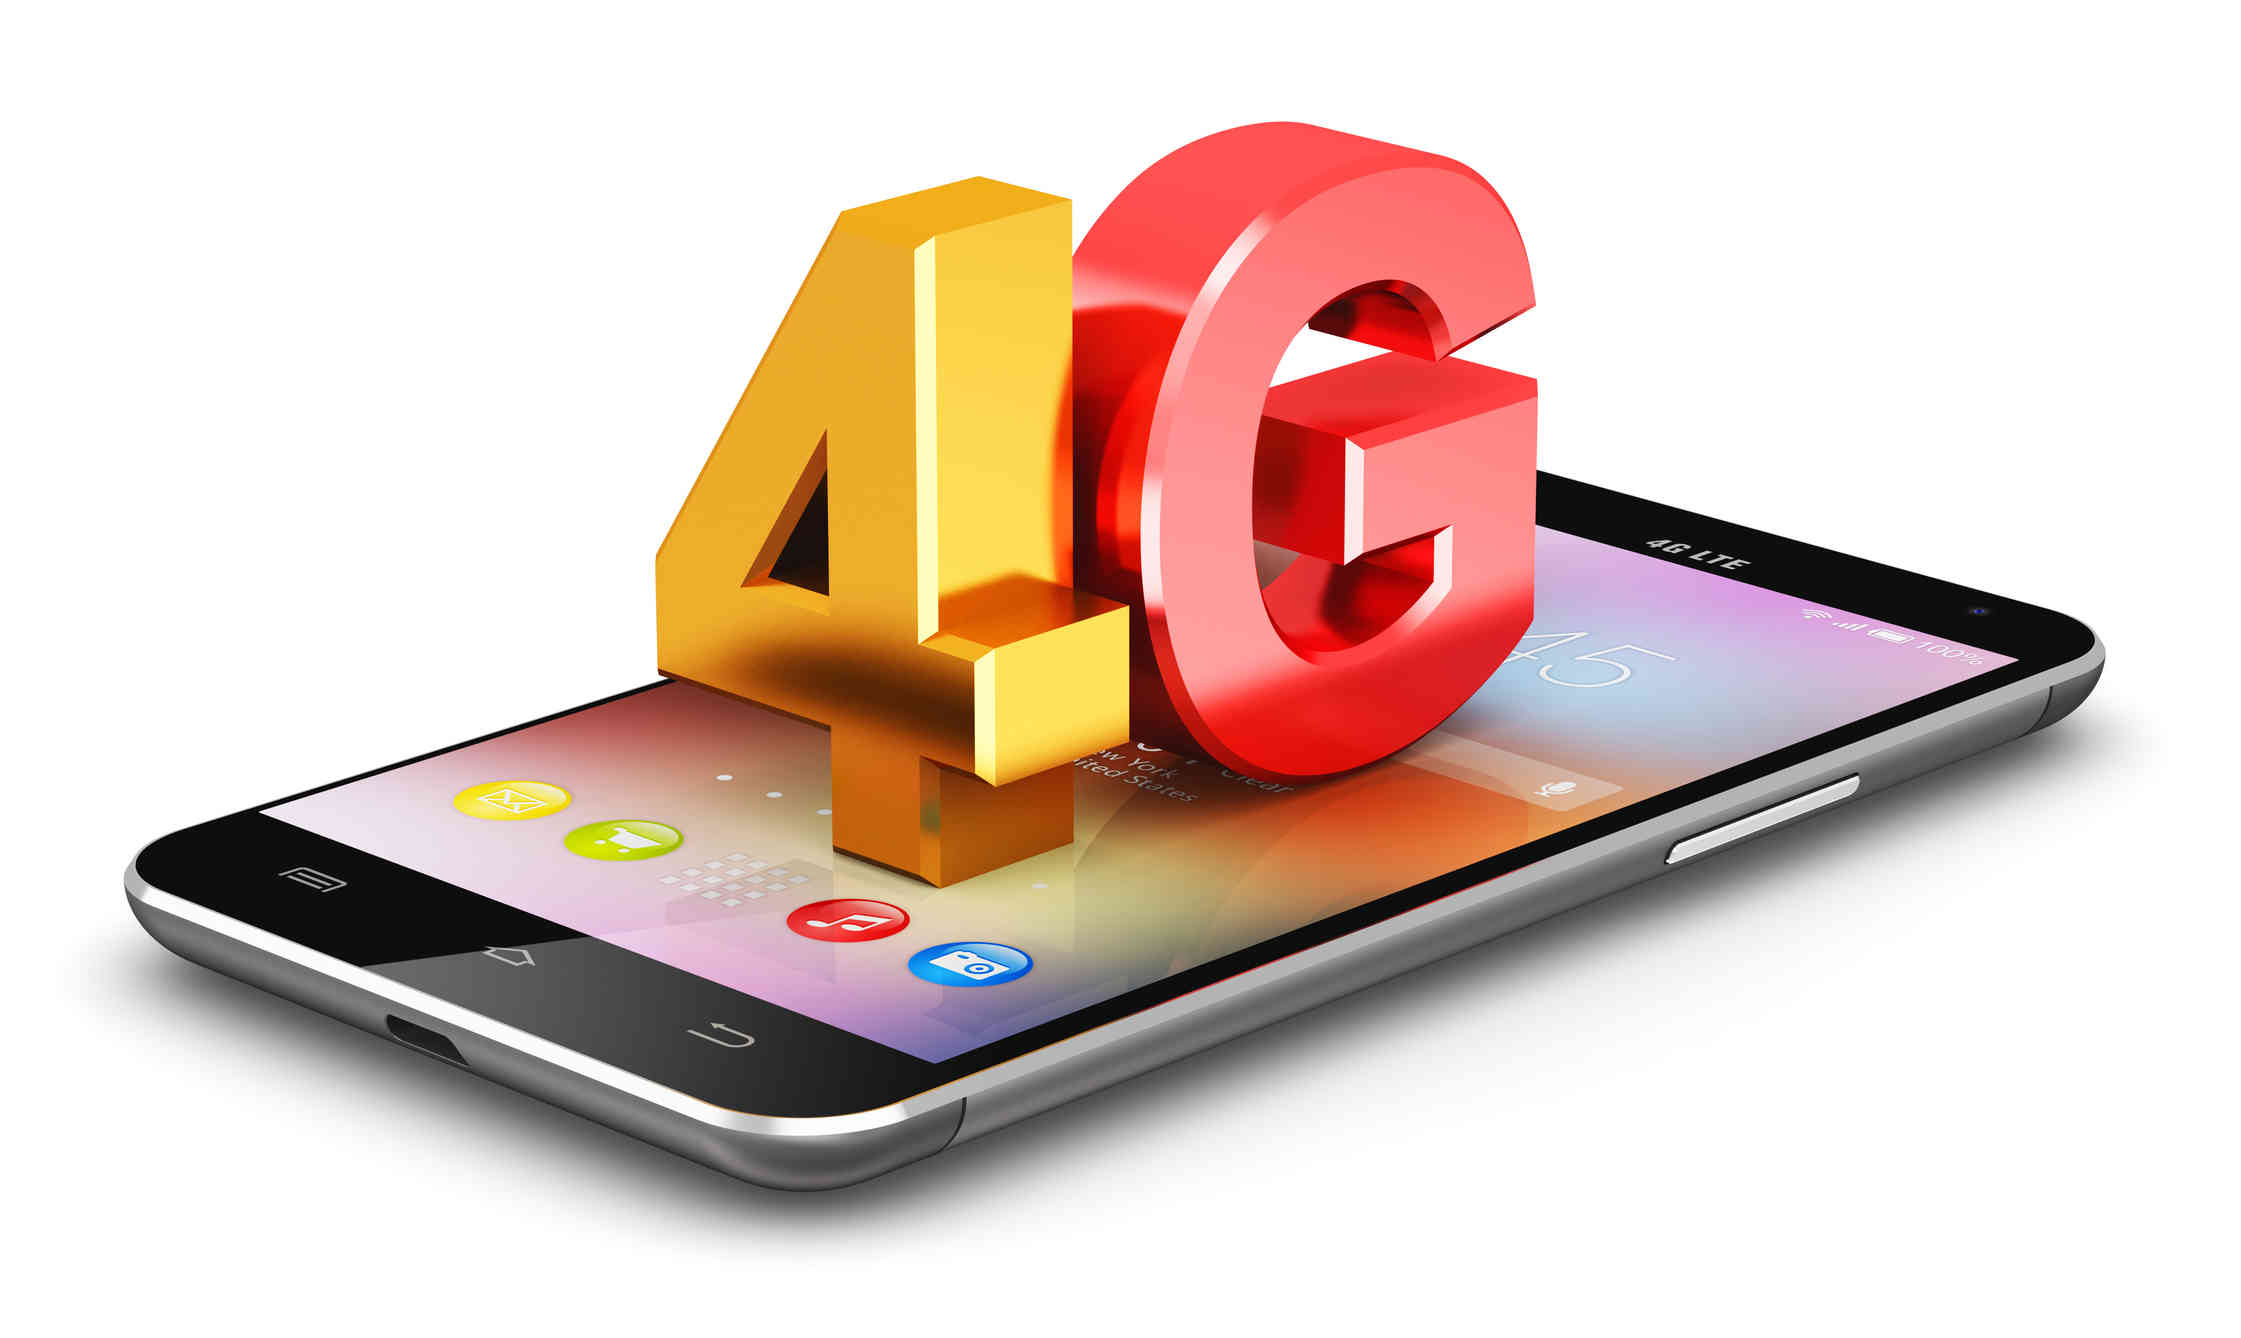 4G Devices market